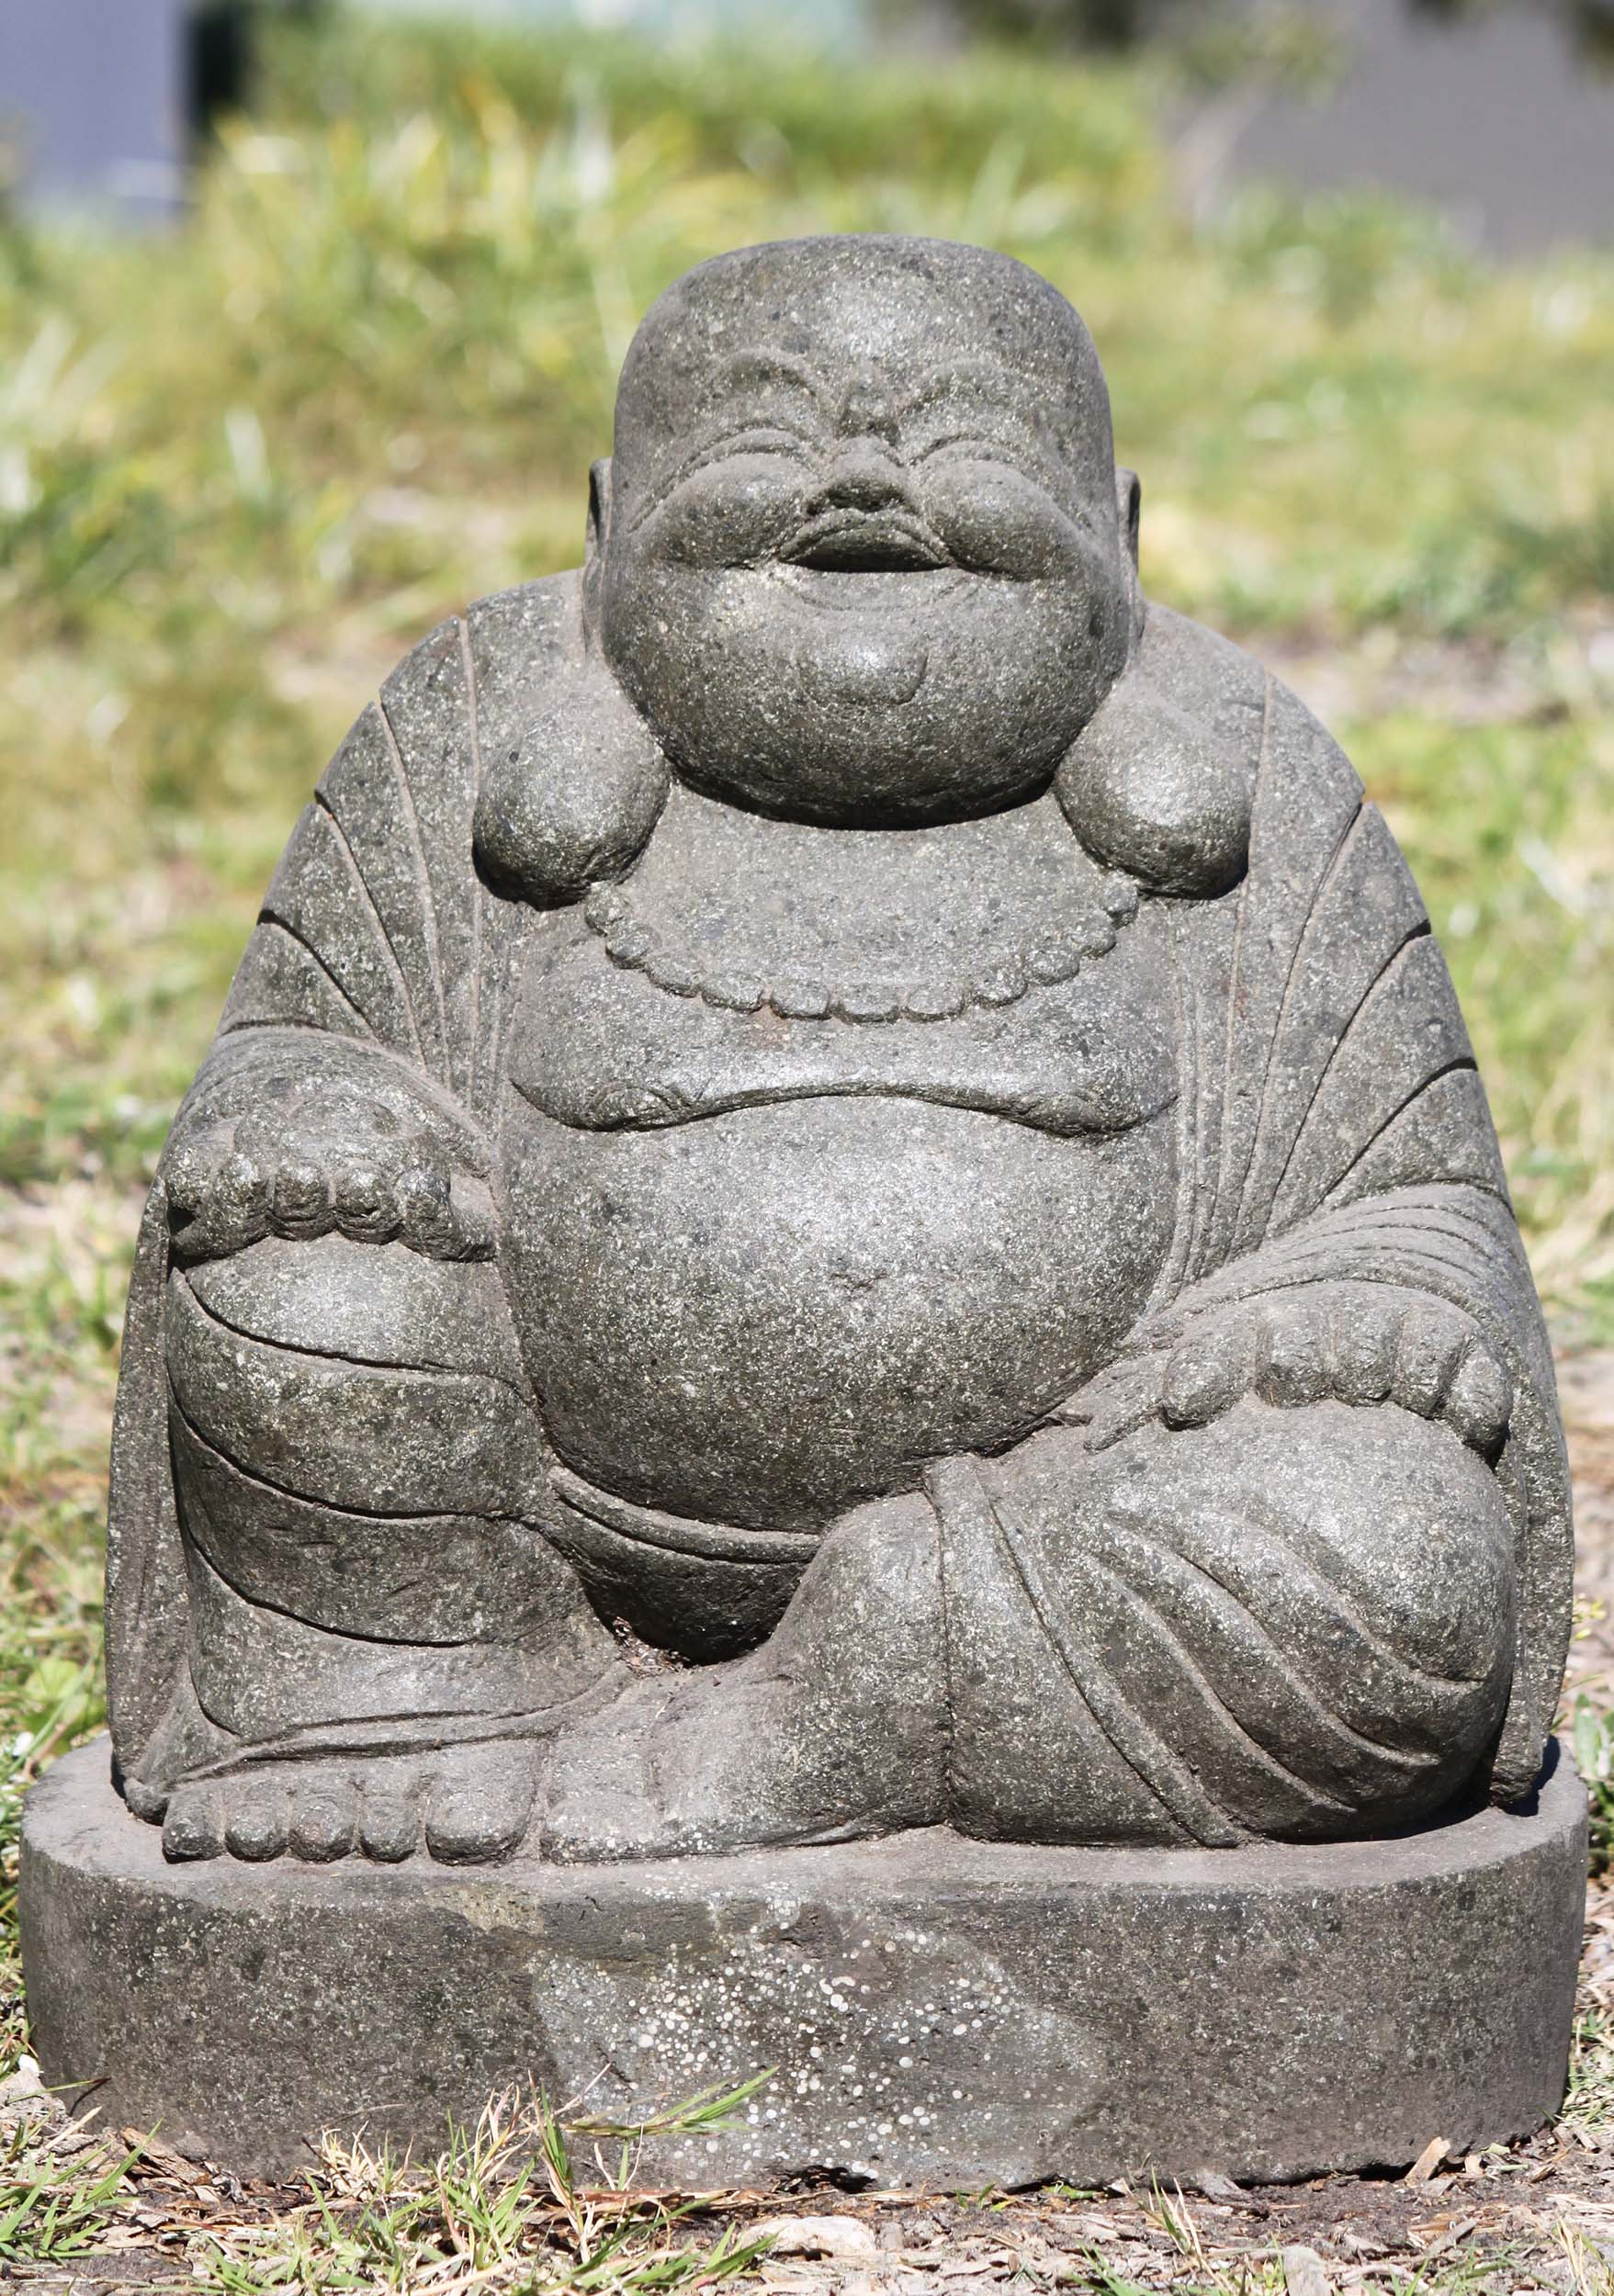 stone garden fat happy buddha statue 20 102ls347z. Black Bedroom Furniture Sets. Home Design Ideas